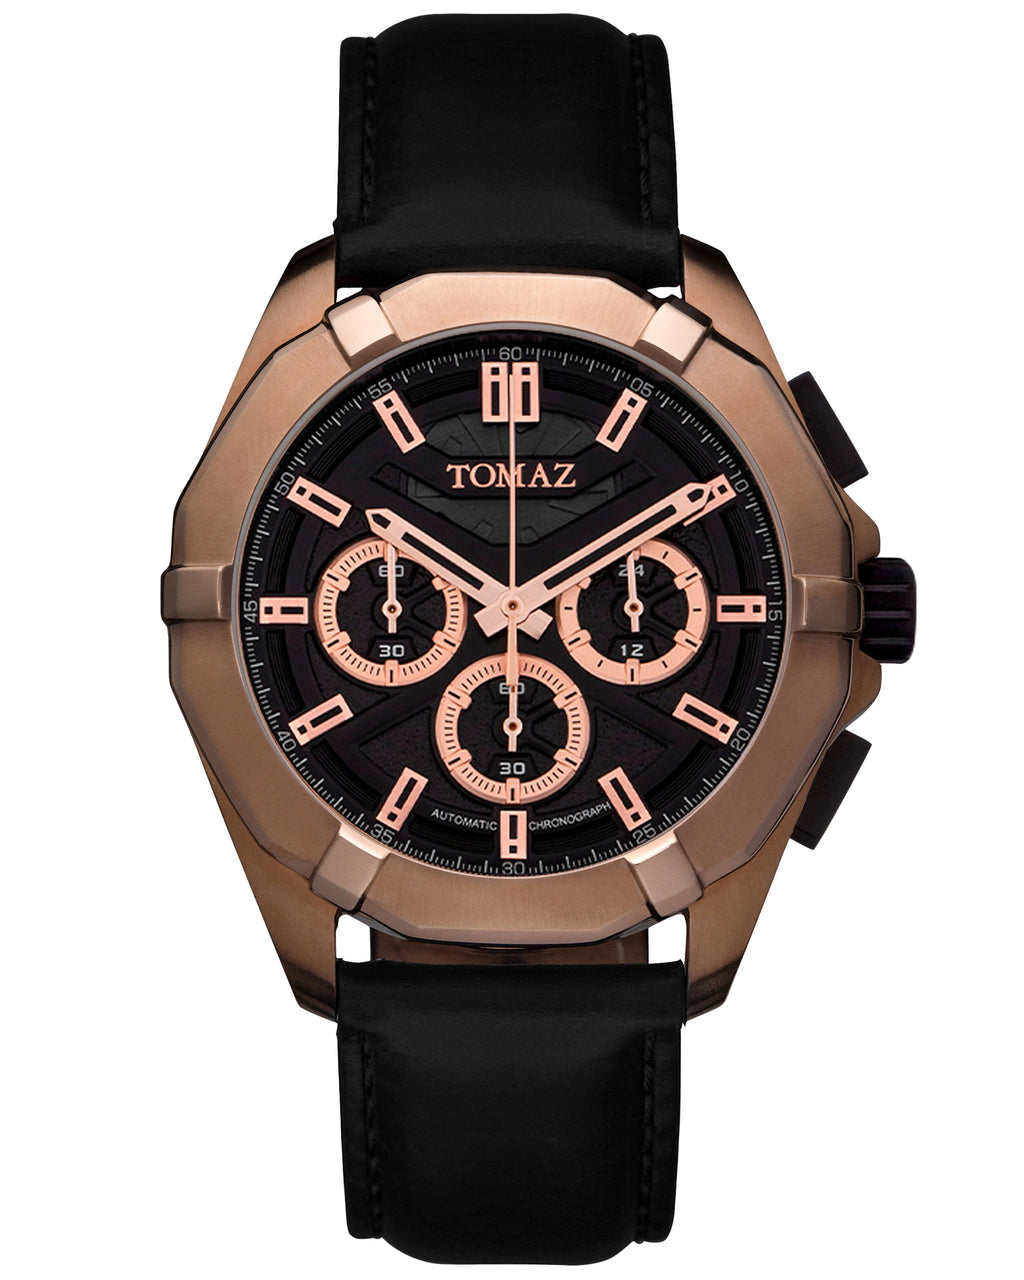 Tomaz Men's Watch TW009C (RoseGold/Black)